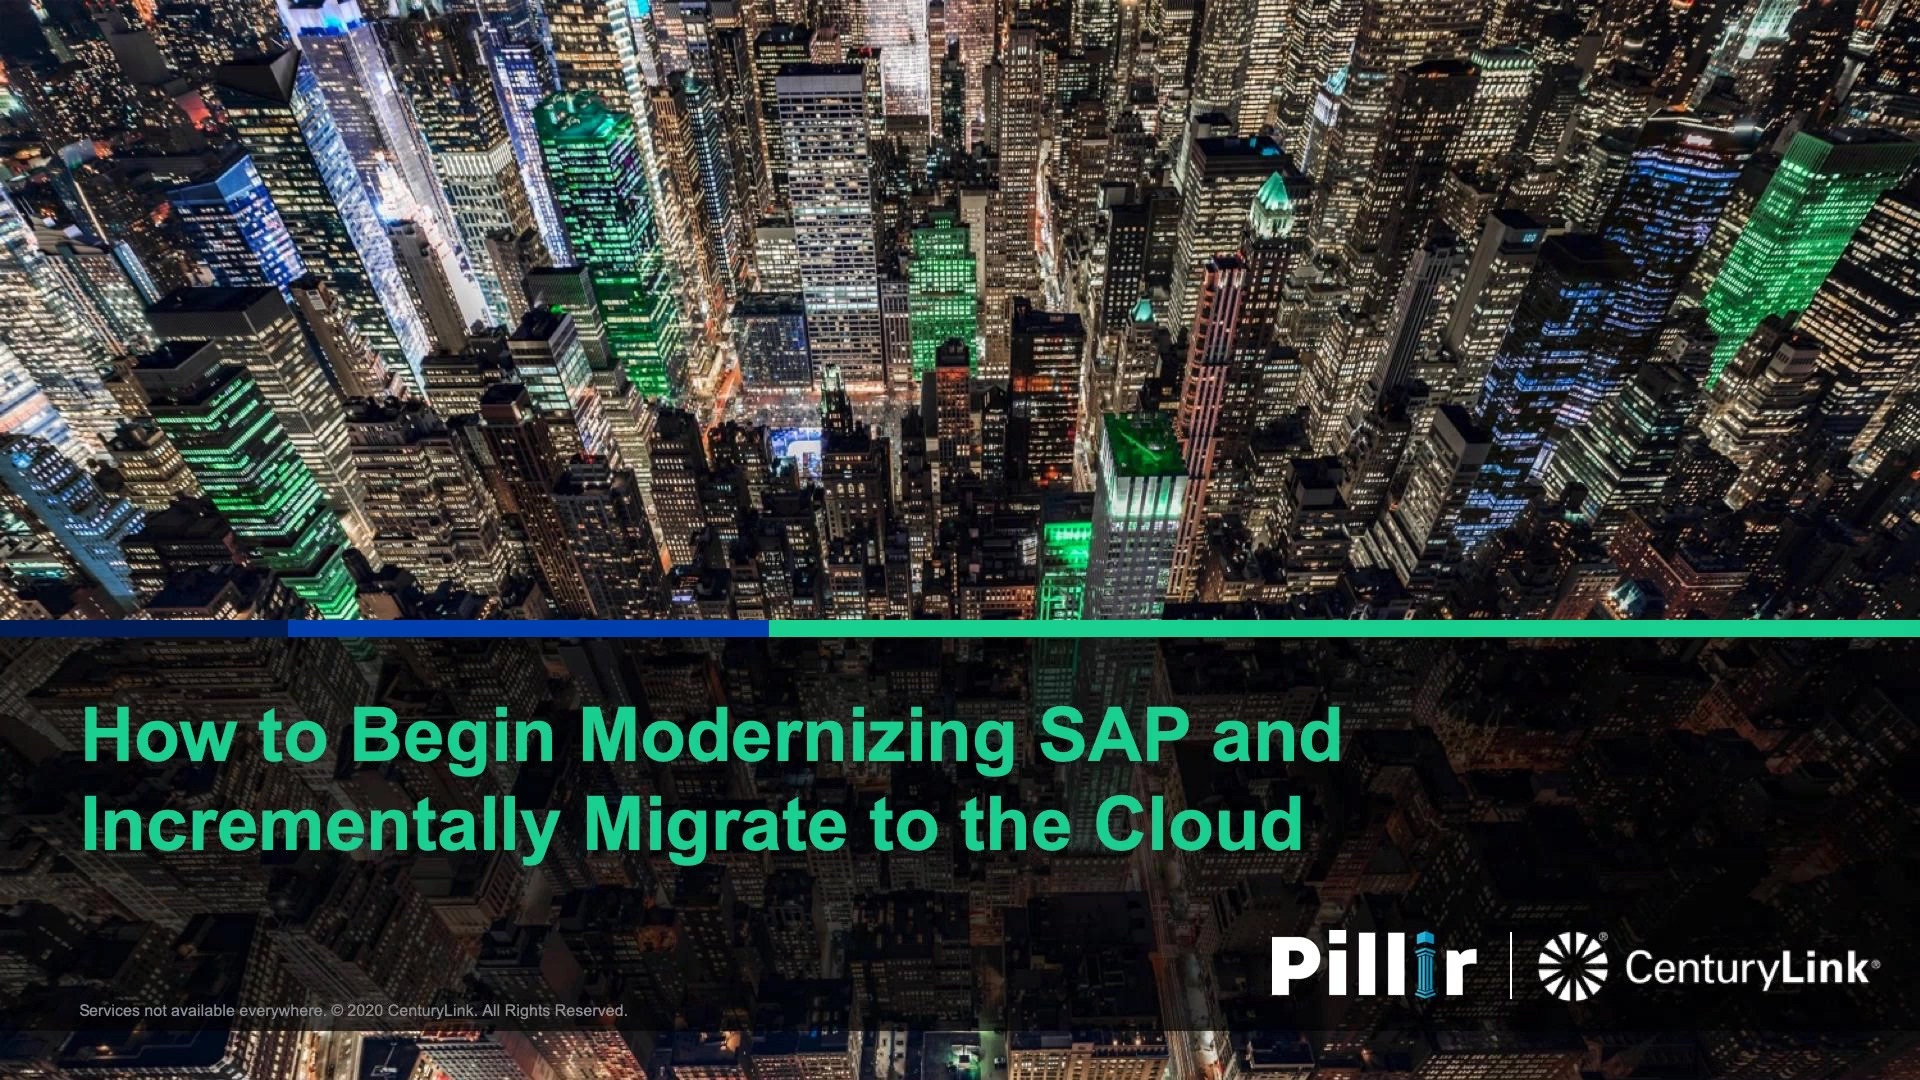 Webinar Recording - First Steps to Incrementally Migrate SAP to the Cloud